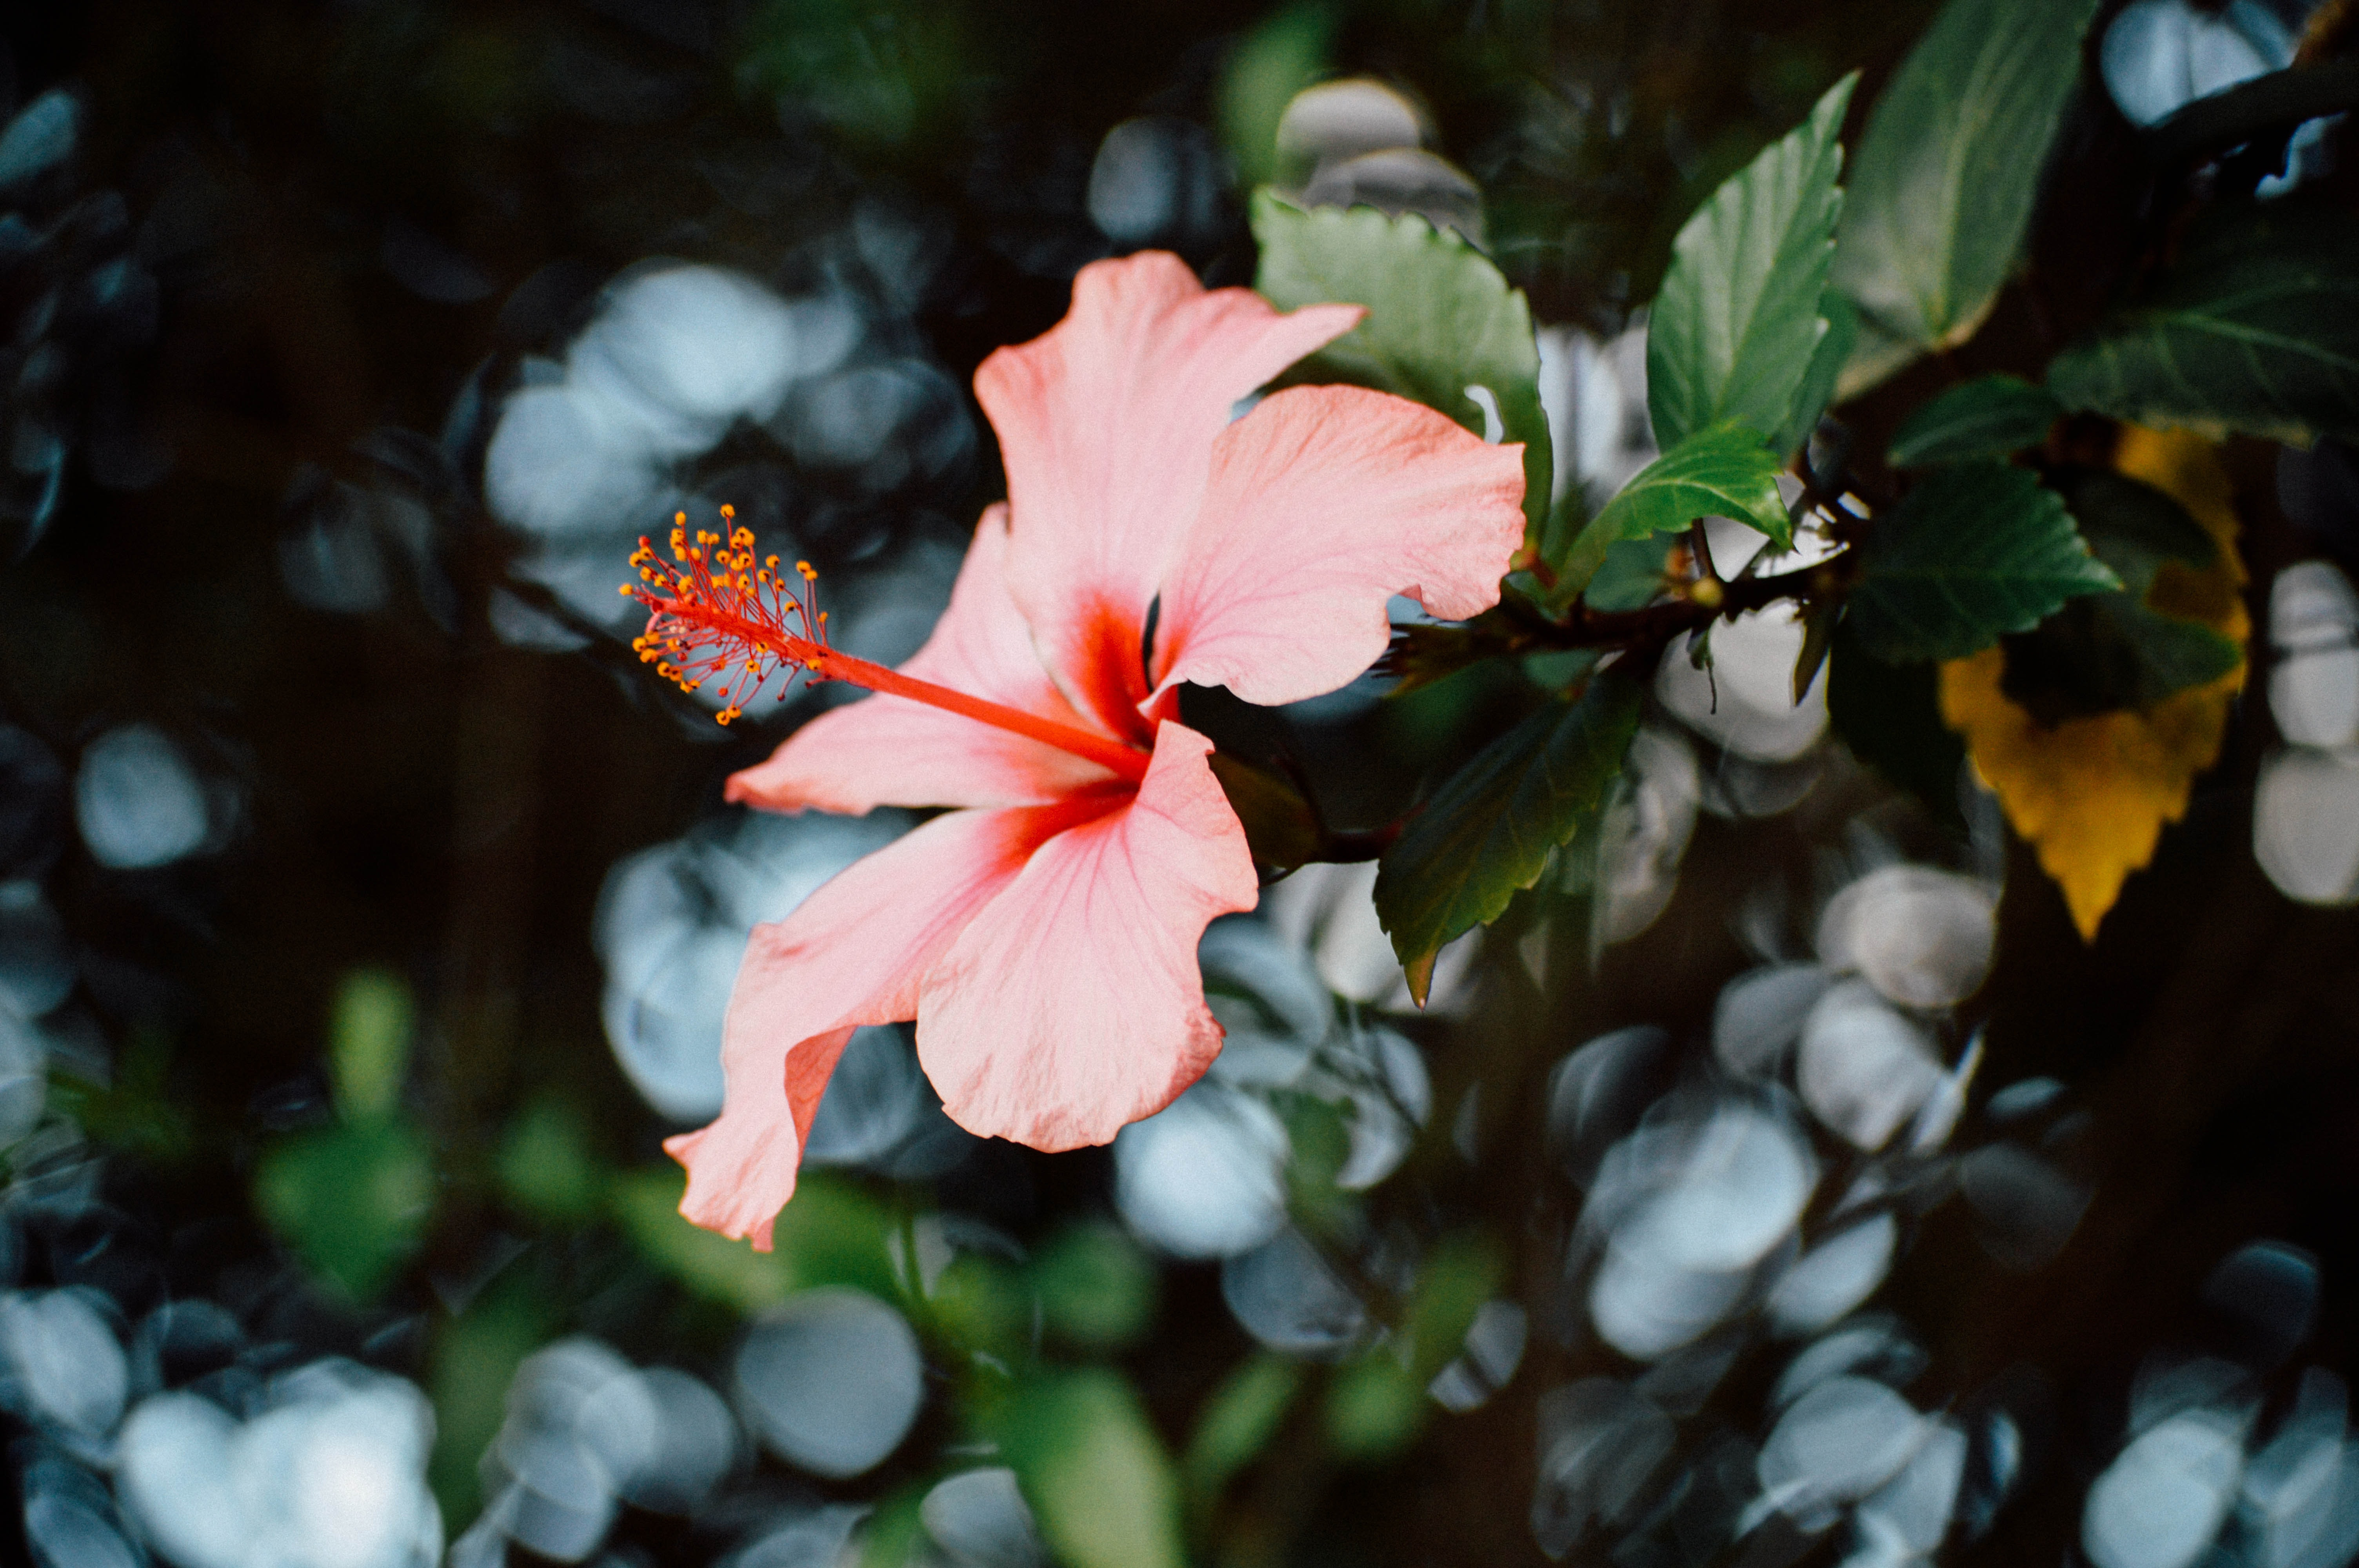 Free Photo Close Up Photography Of Hibiscus Flower Beautiful Flower Outdoors Free Download Jooinn